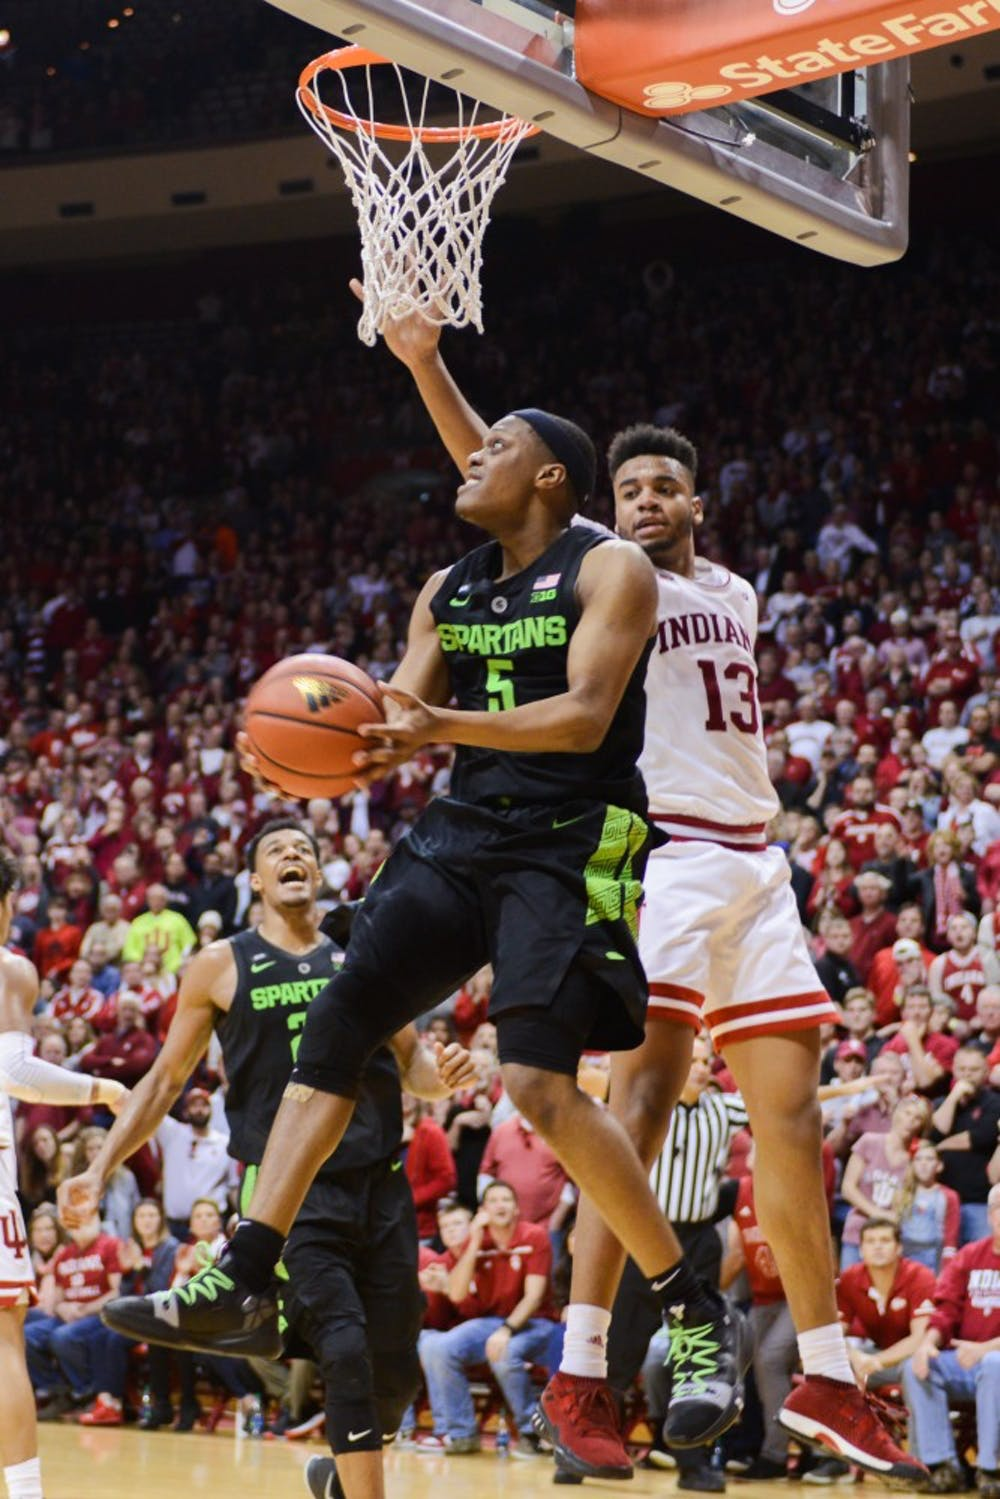 <p>Junior point guard Cassius Winston (5) looks for an open shot during the game against Indiana at the Bloomington Assembly Hall Mar. 2, 2019. The Spartans fell to the Hoosiers, 63-62.</p>